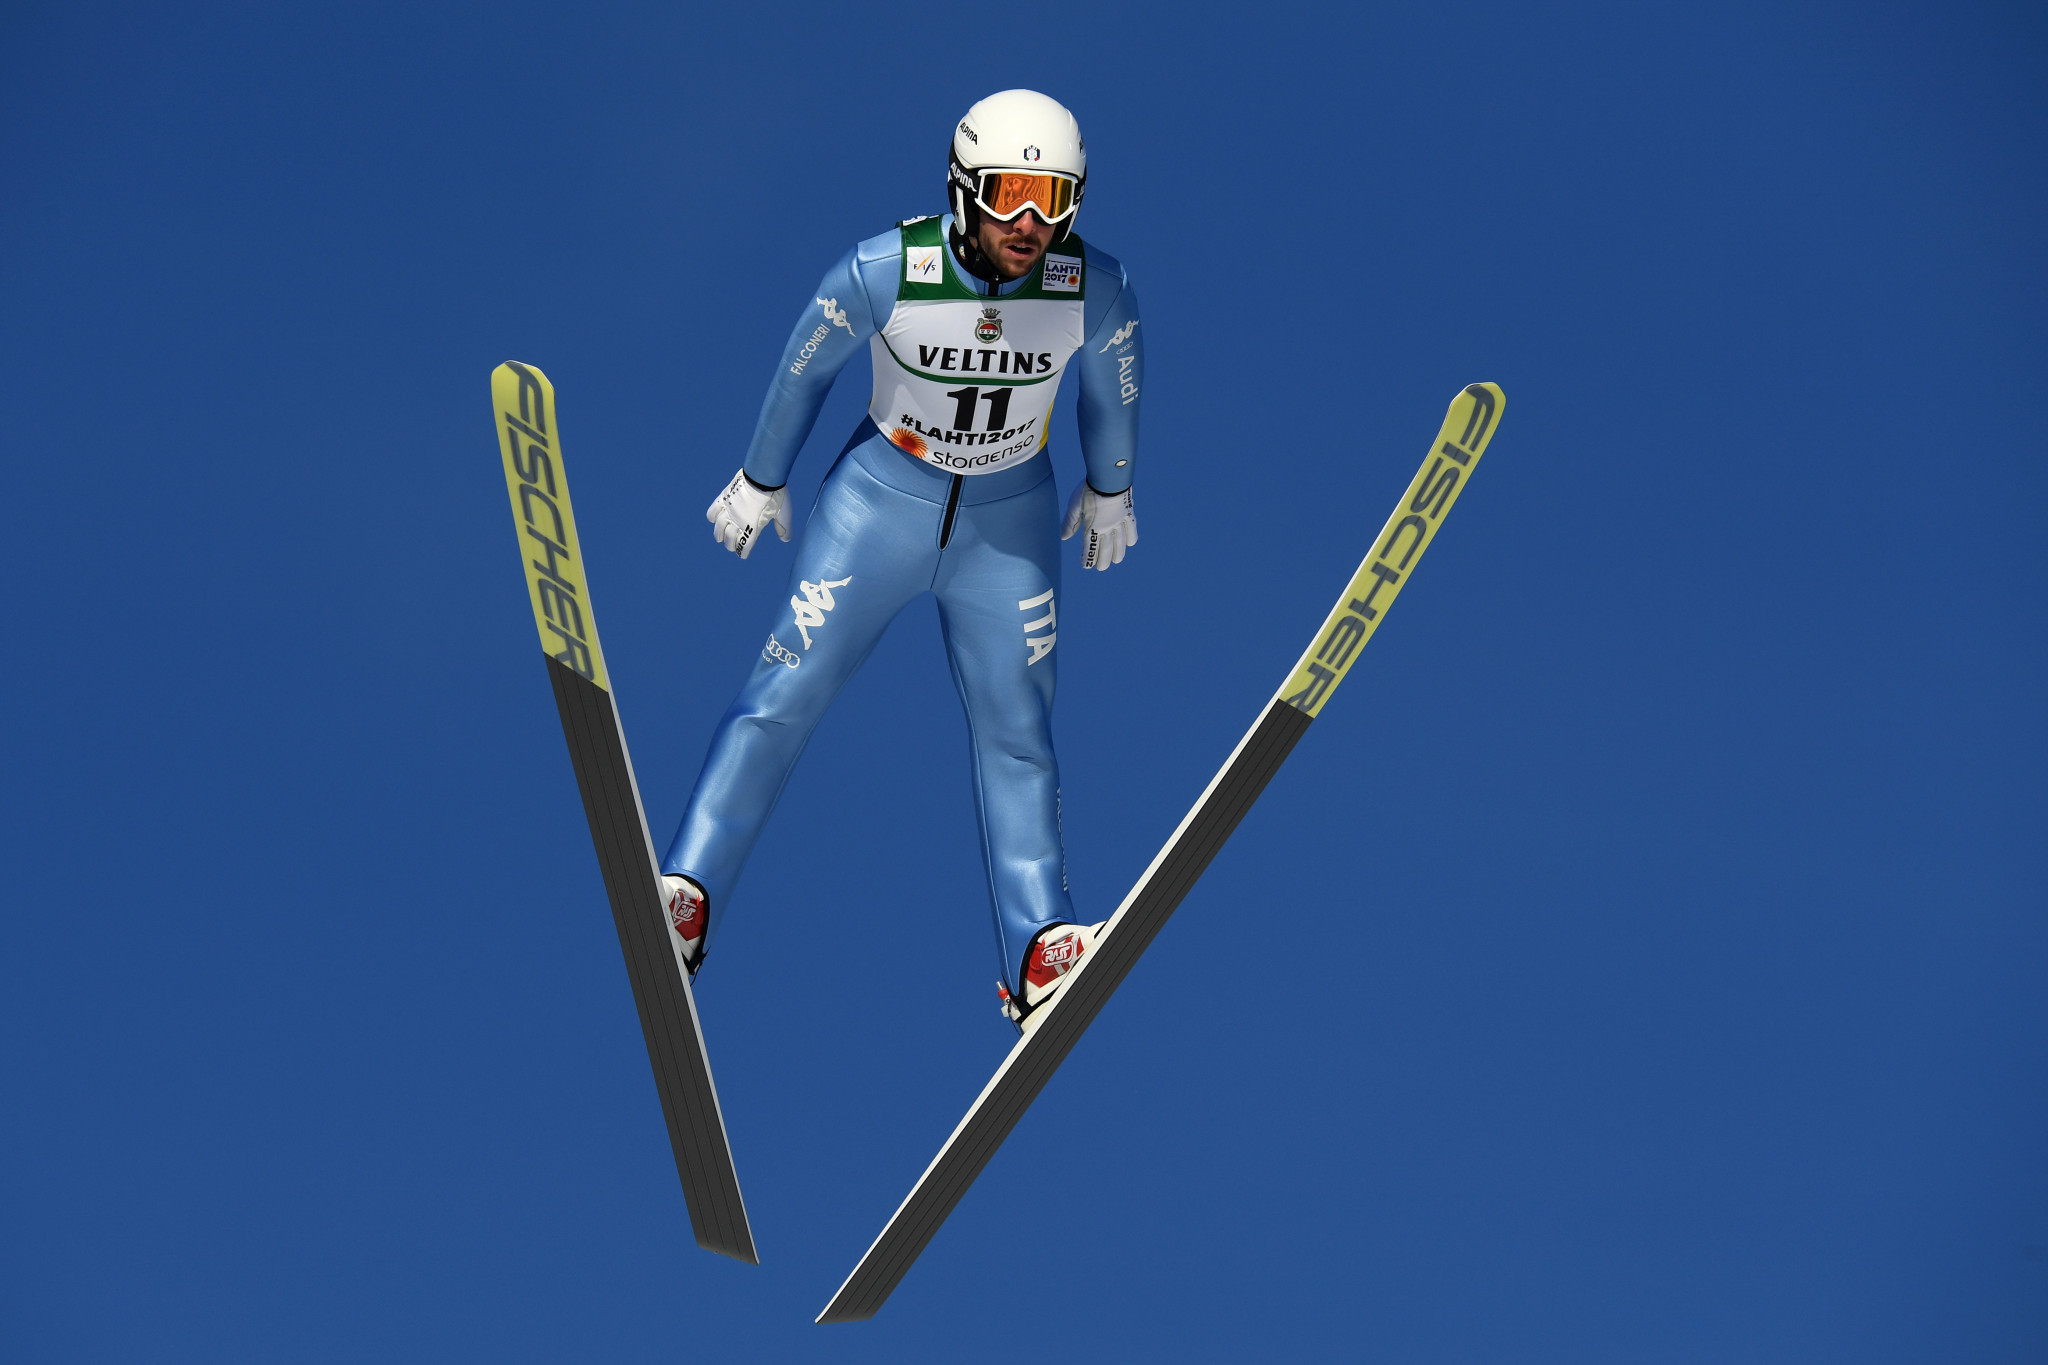 Bauer announces retirement from Nordic combined